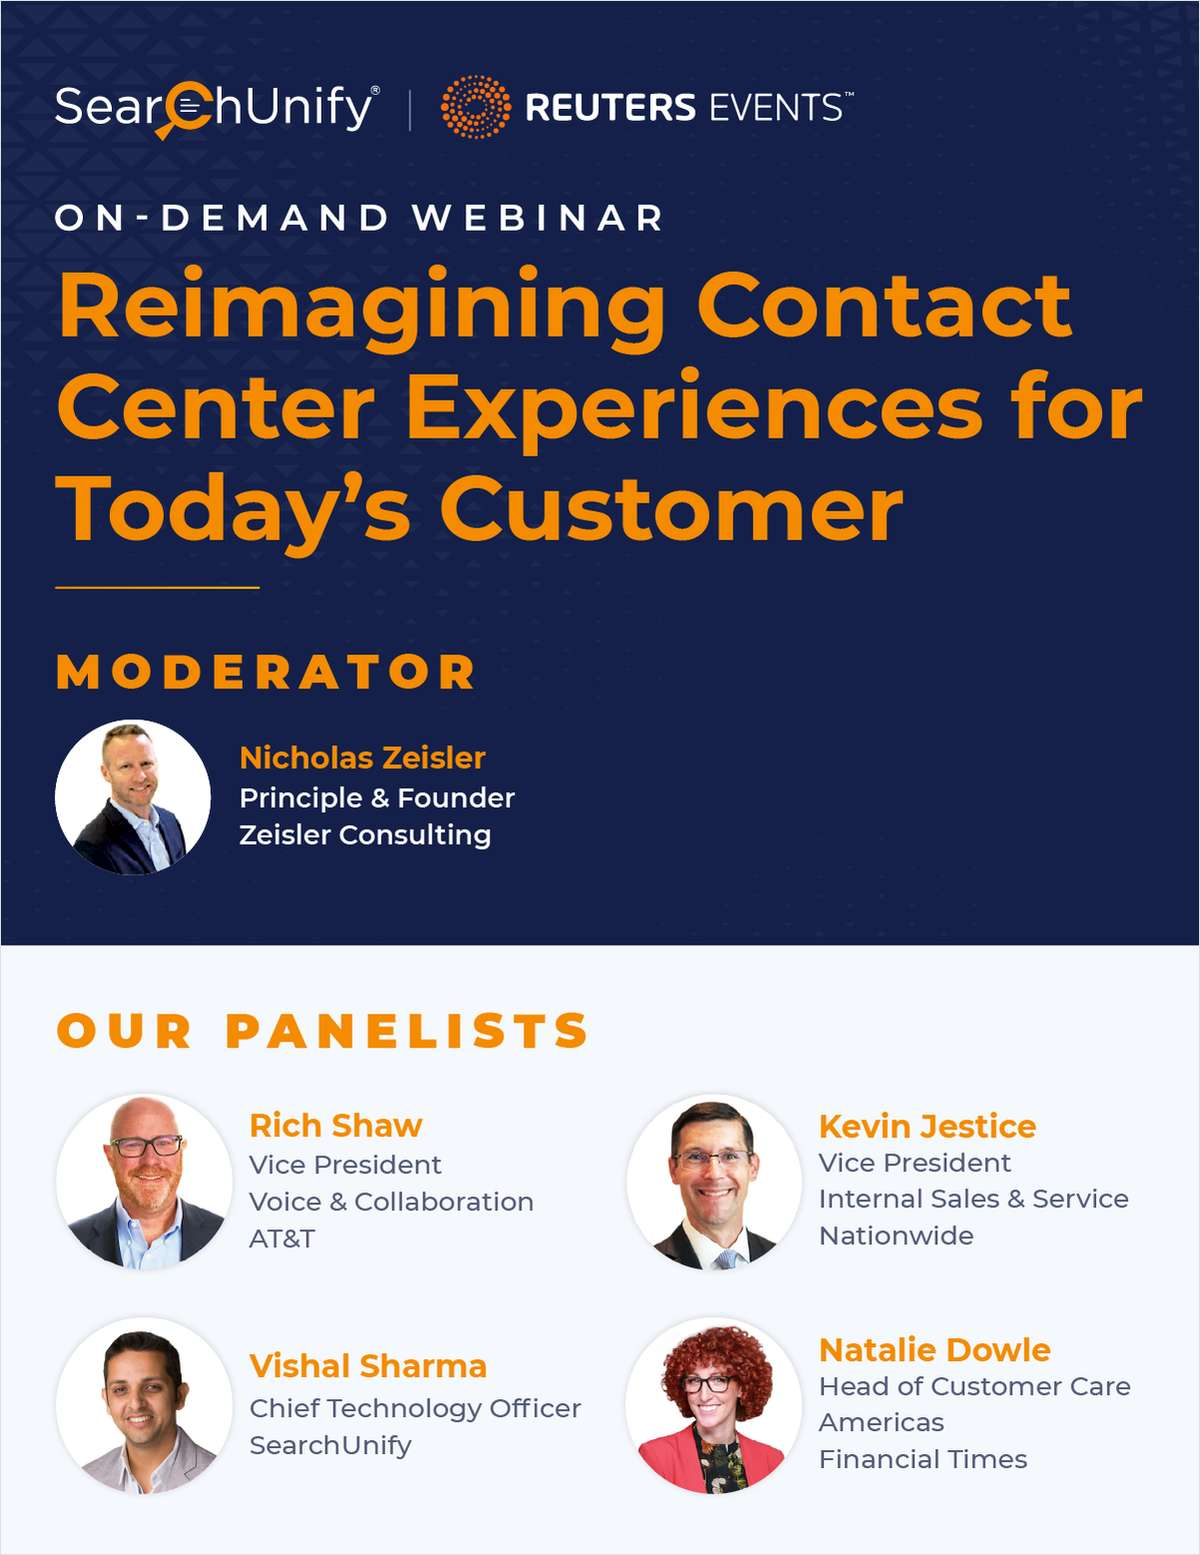 Reimagining contact center experiences for today's customer